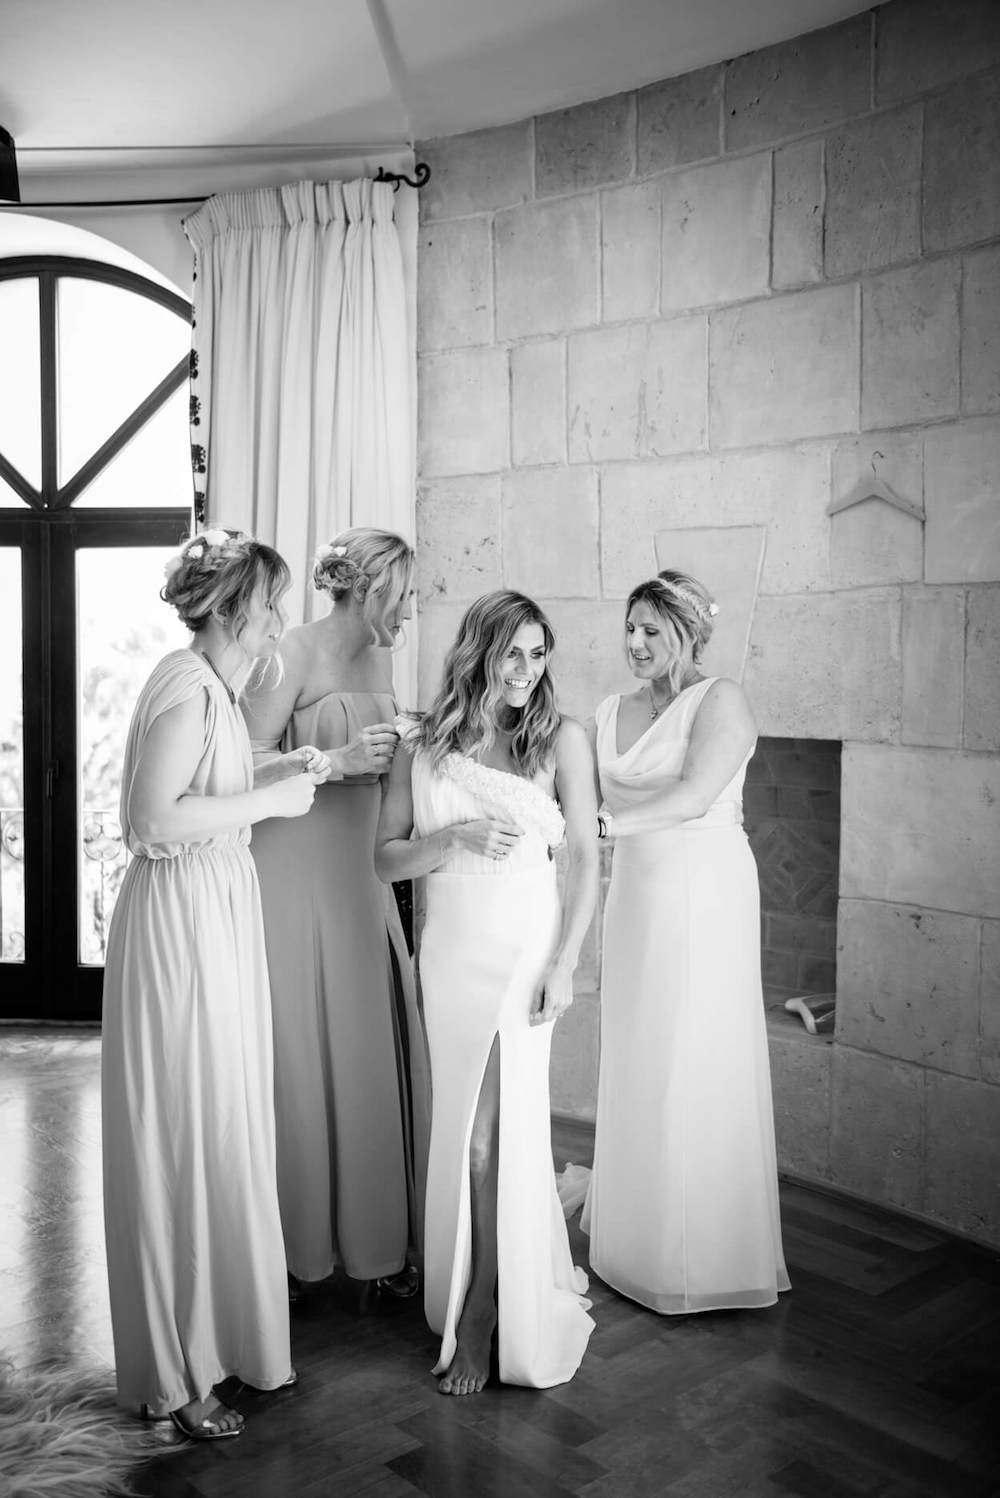 getting ready Zoe hardman bridesmaids pronovia dress hello magazine